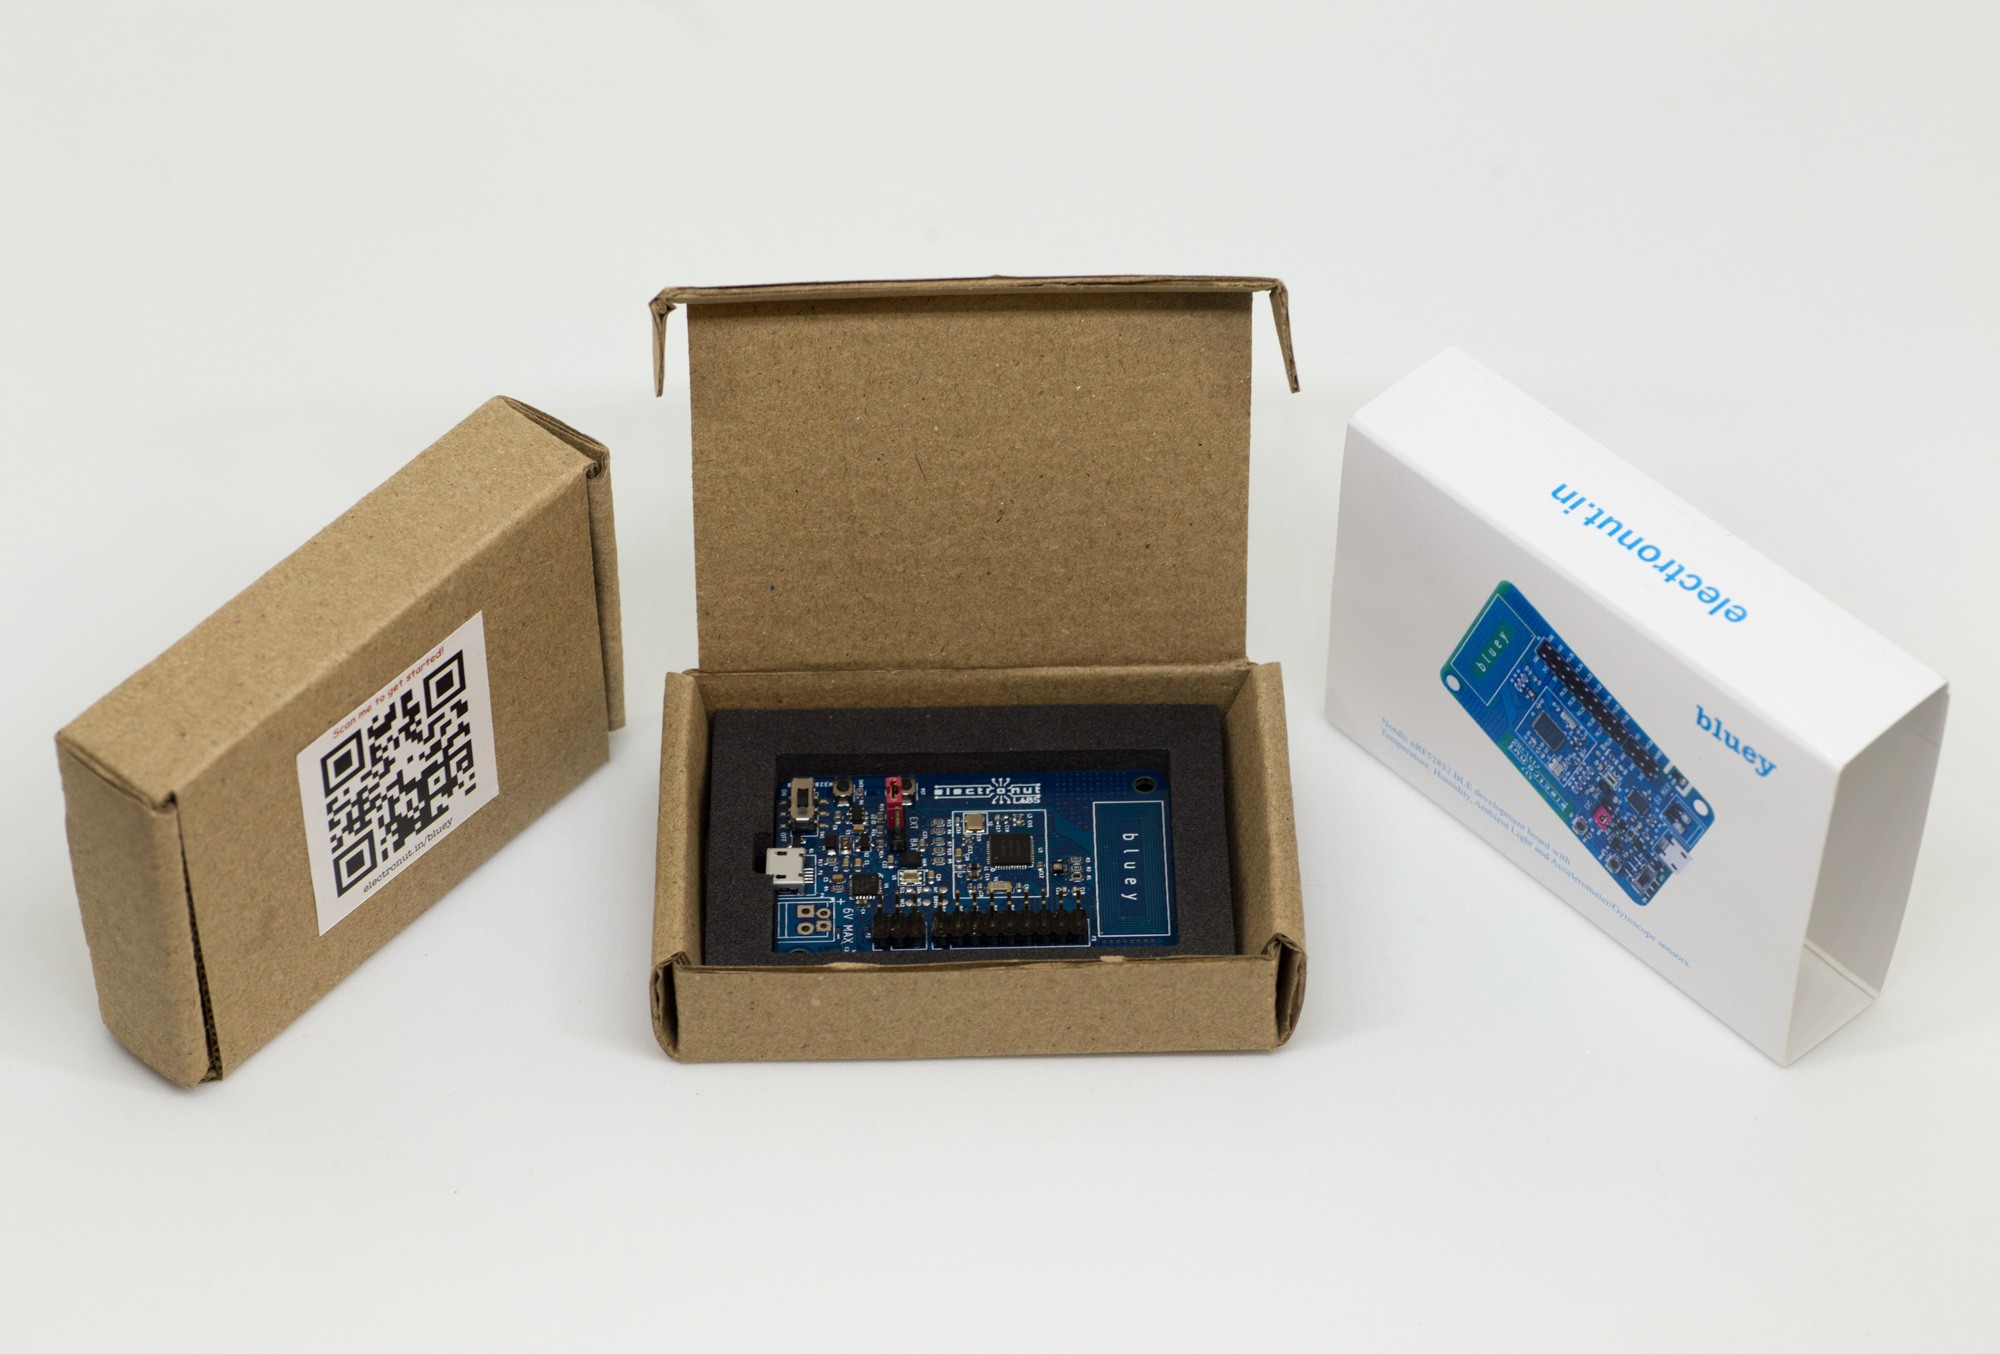 Bluey, BLE Development Board Supports NFC